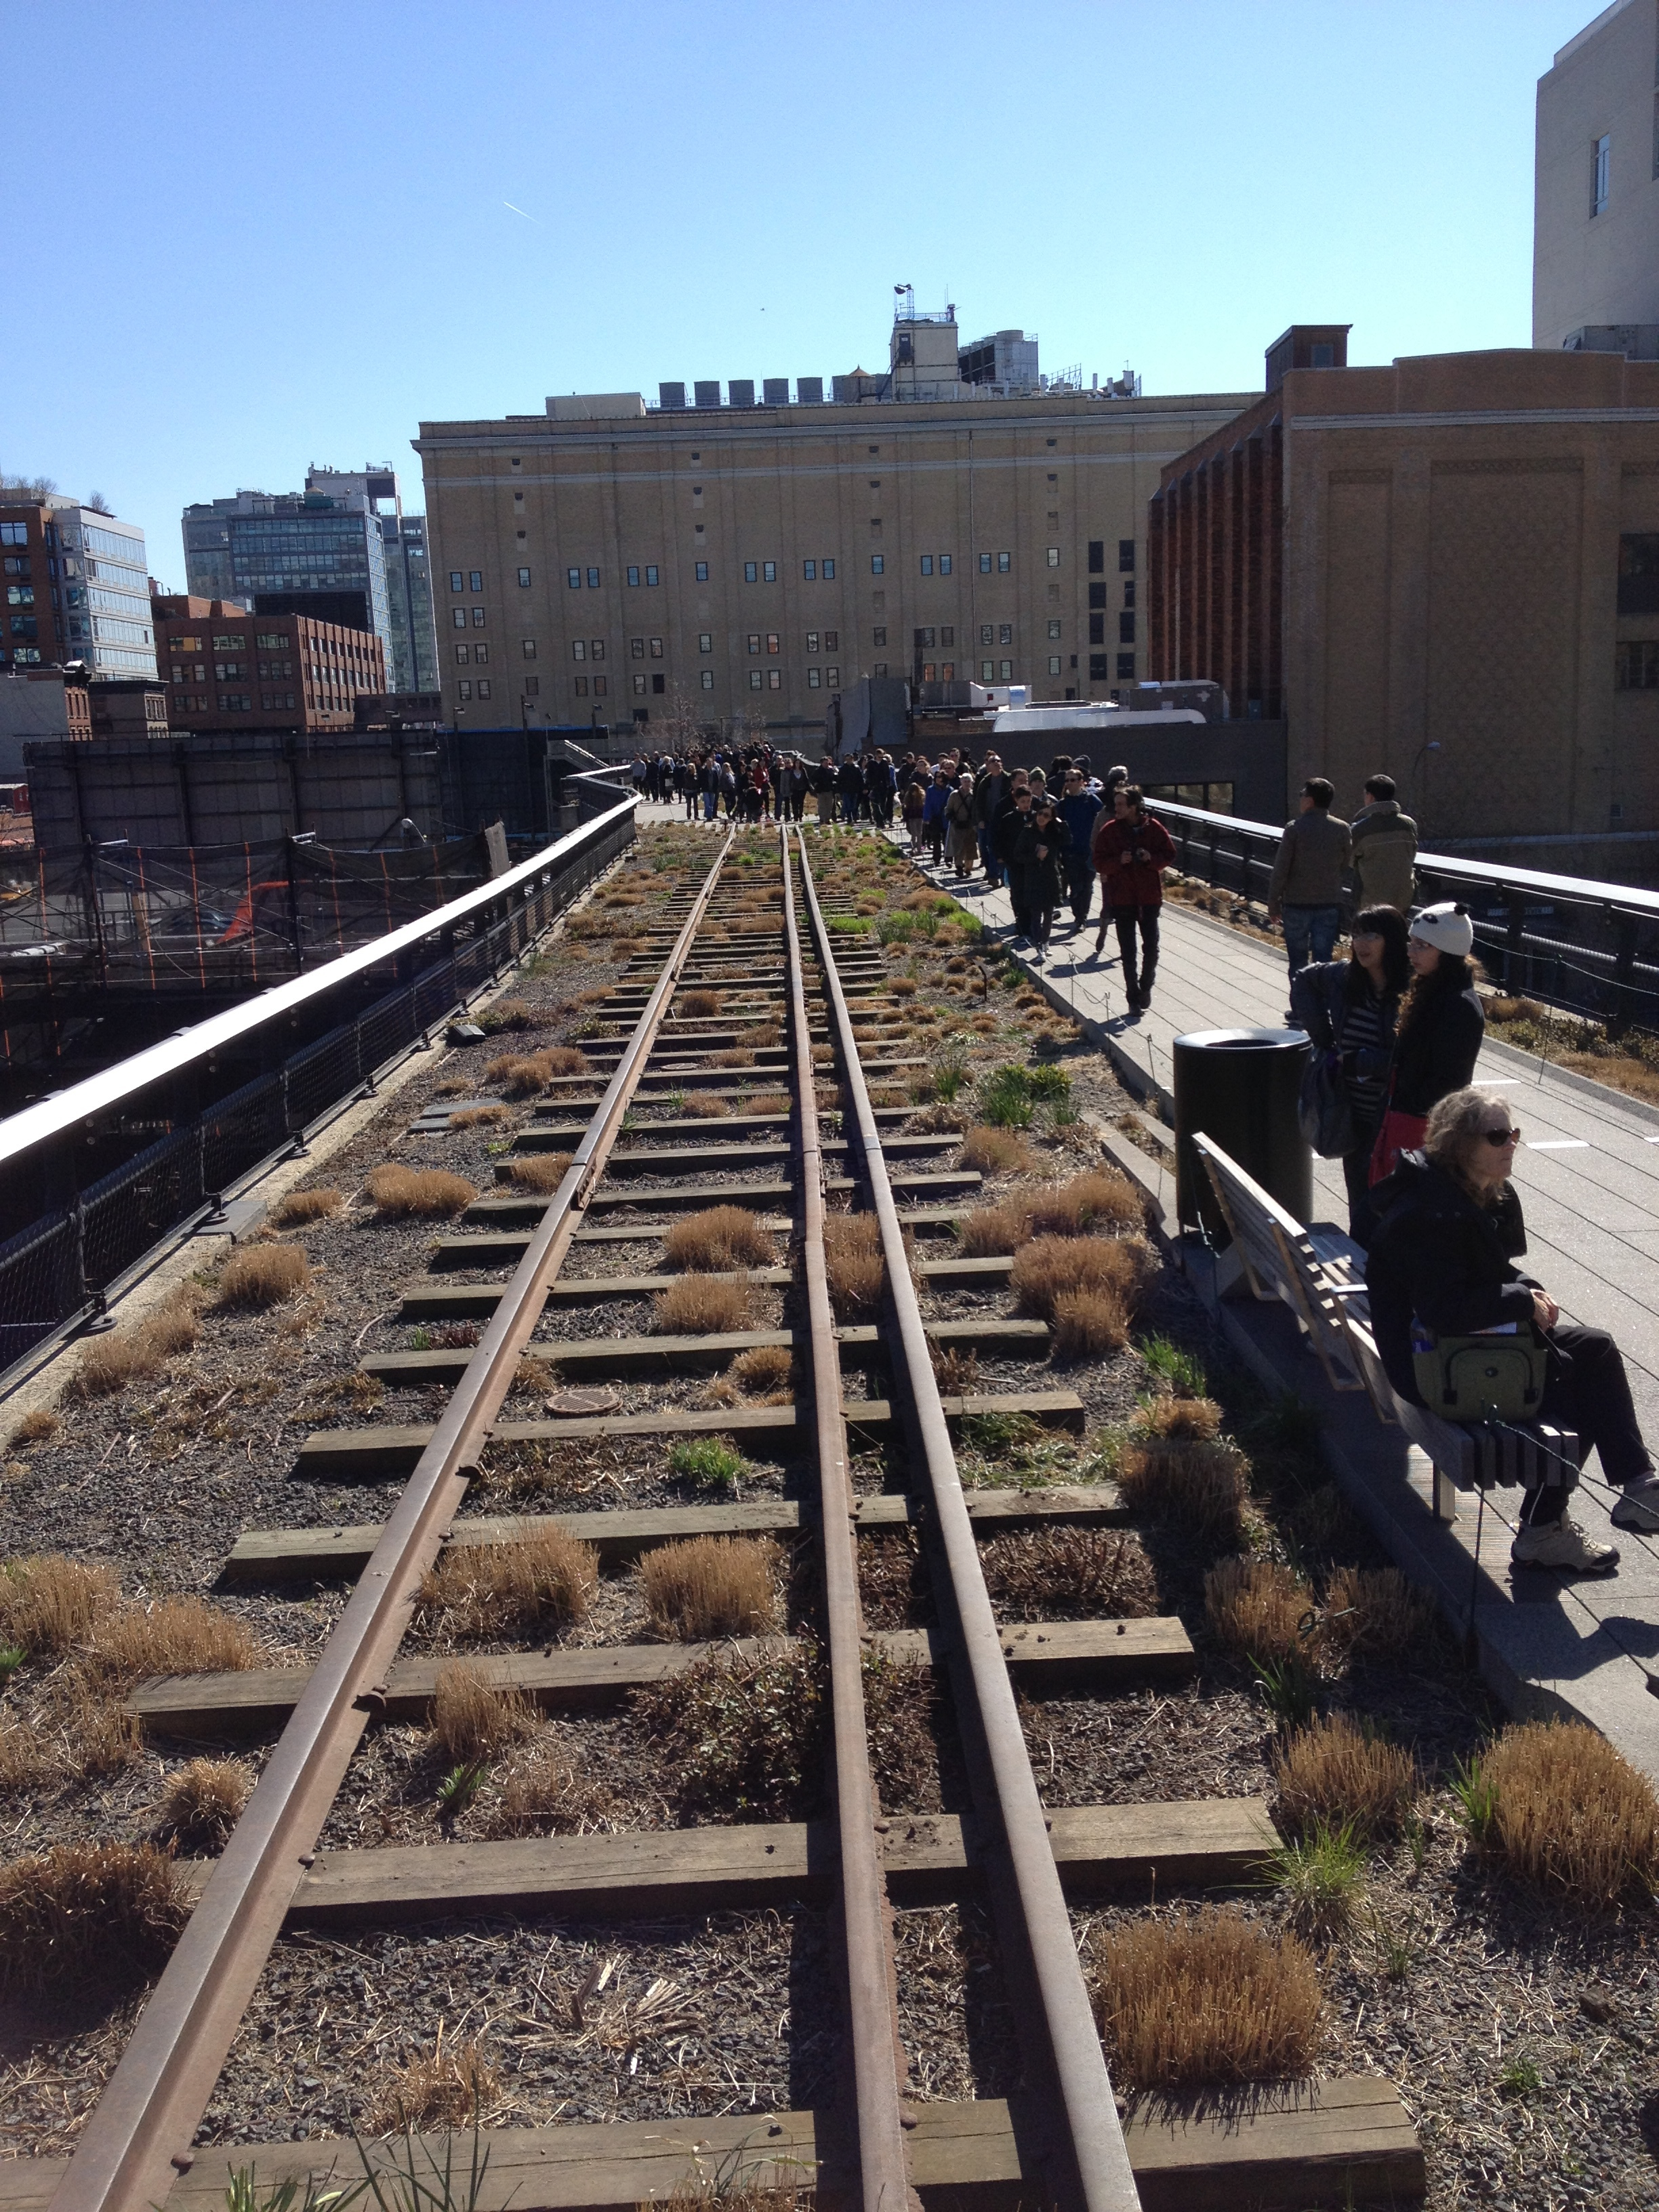 The High Line, New York. Another cell phone image for which I apologize.